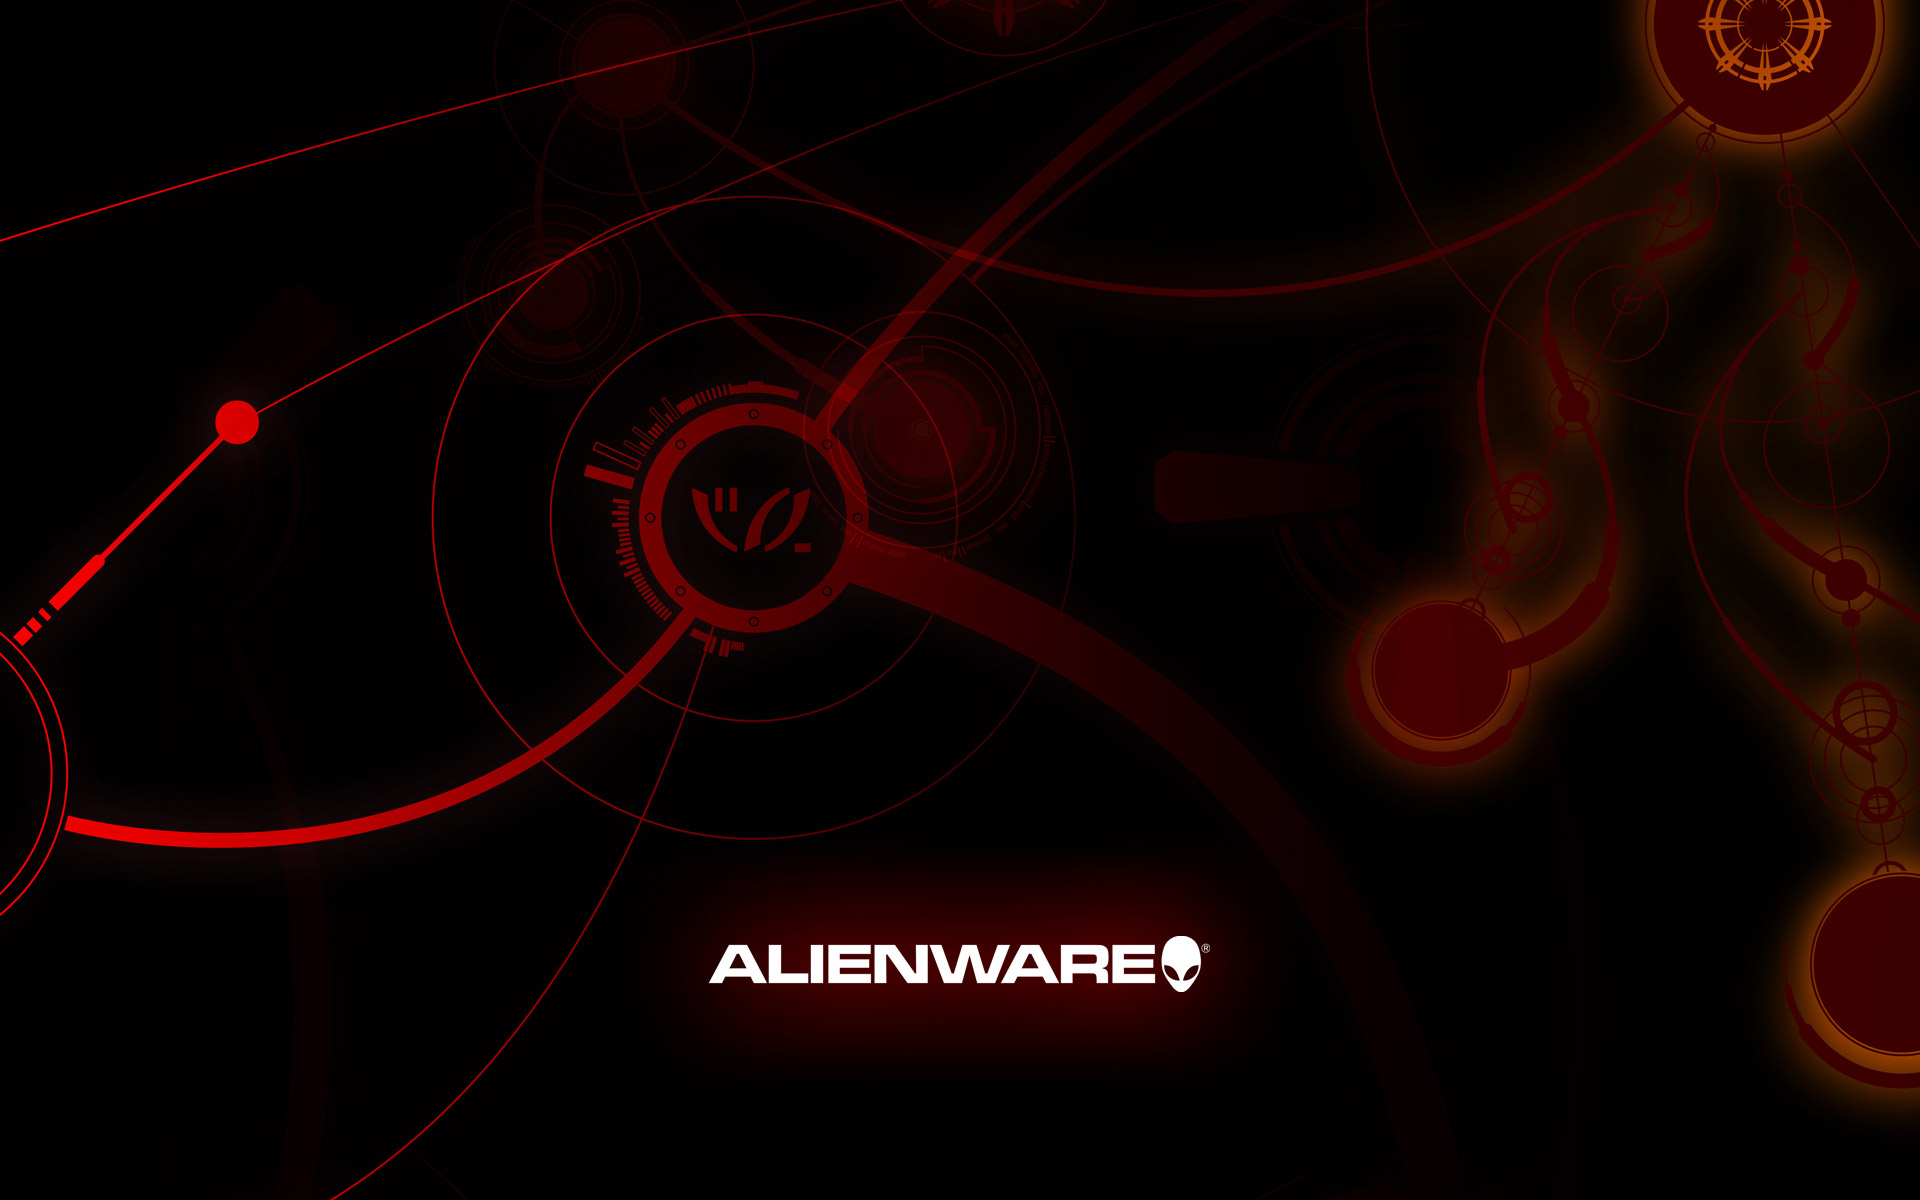 alienware desktop background red basic design 1920x1200